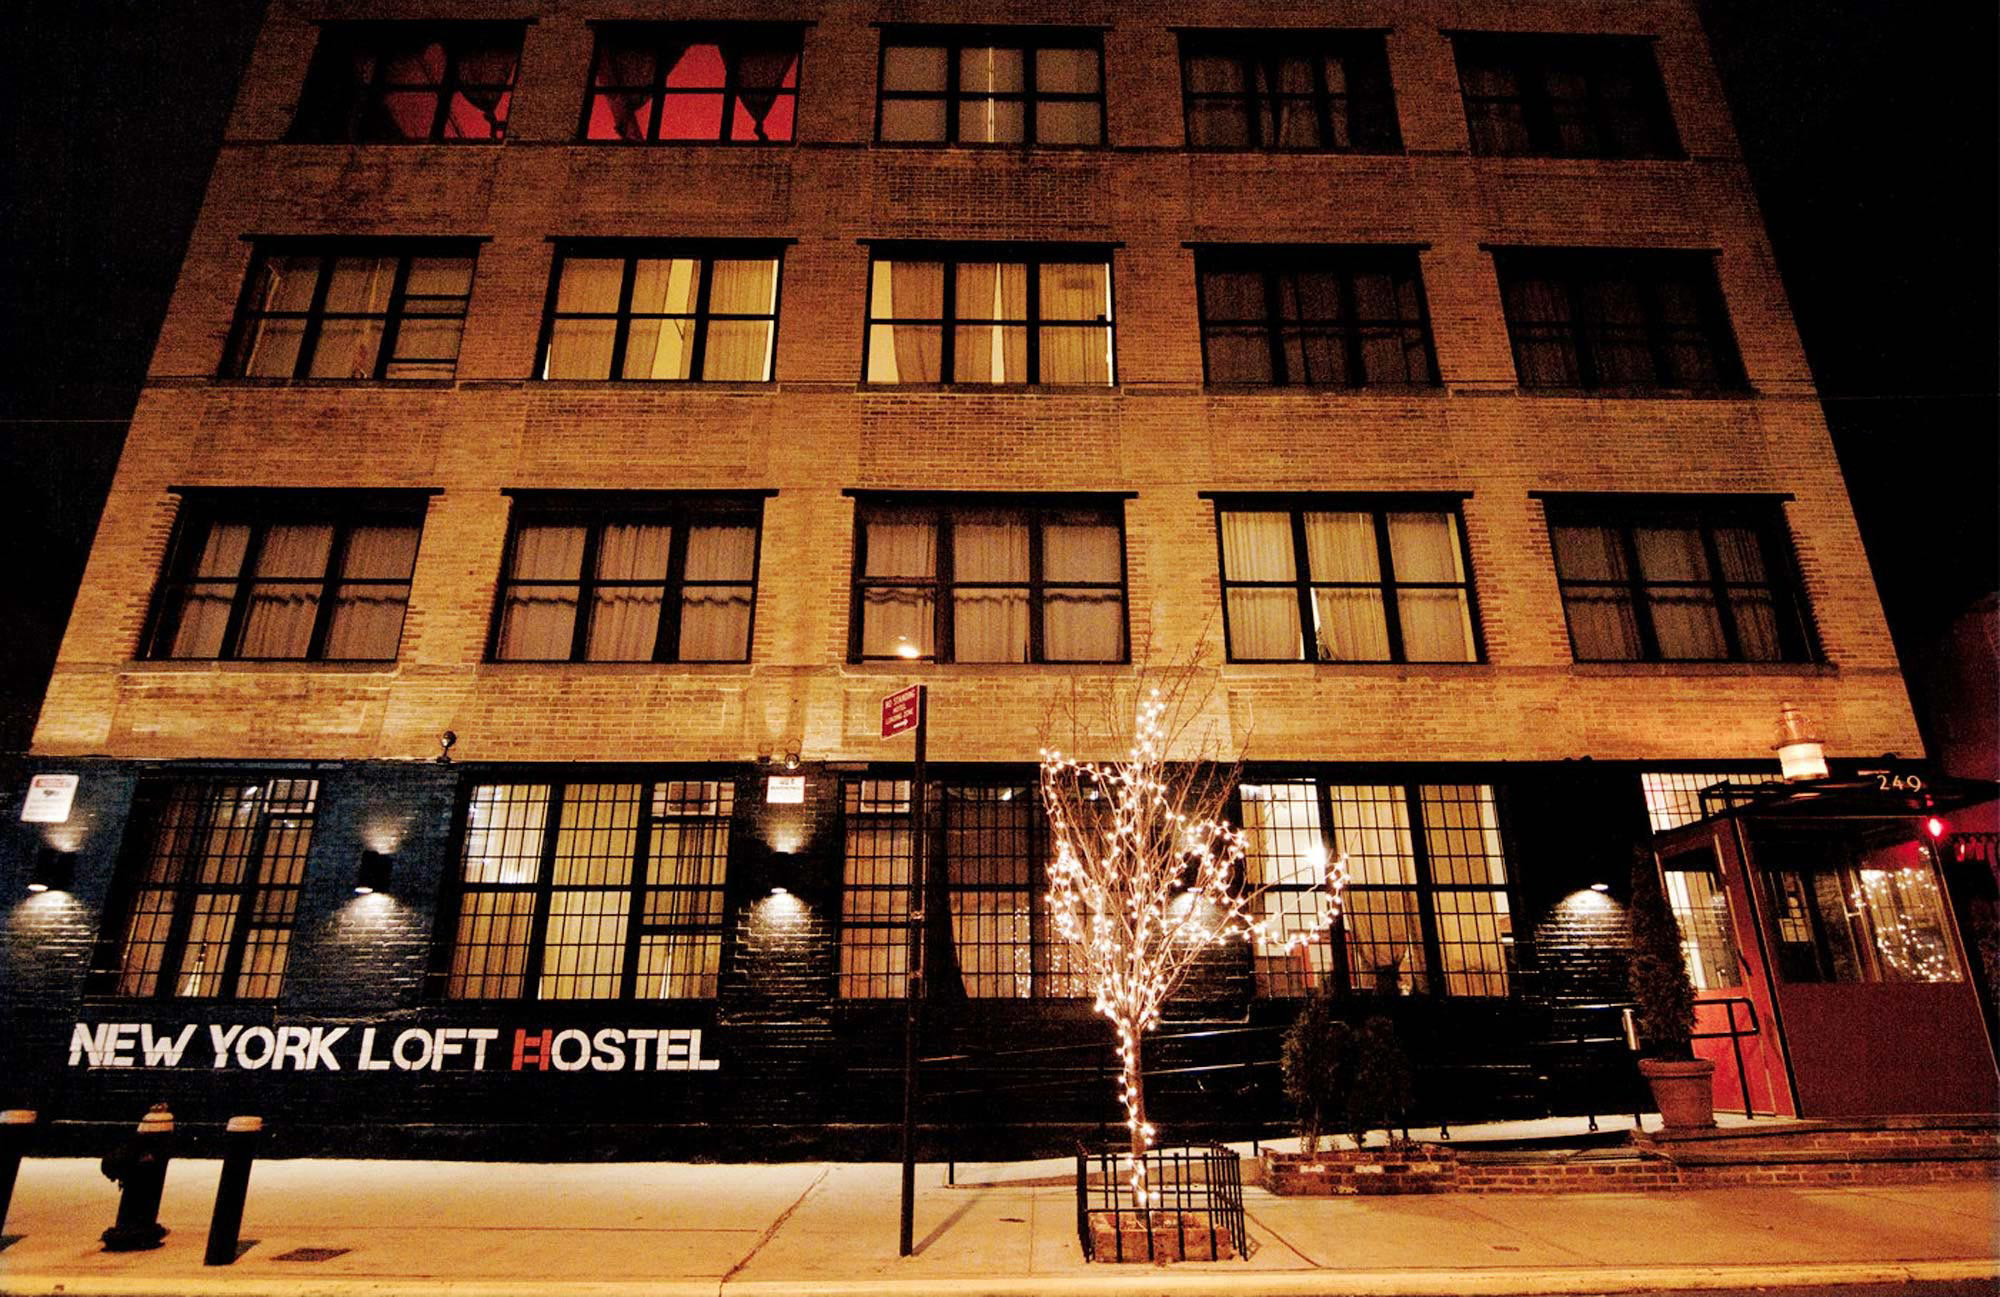 new york loft hostel night